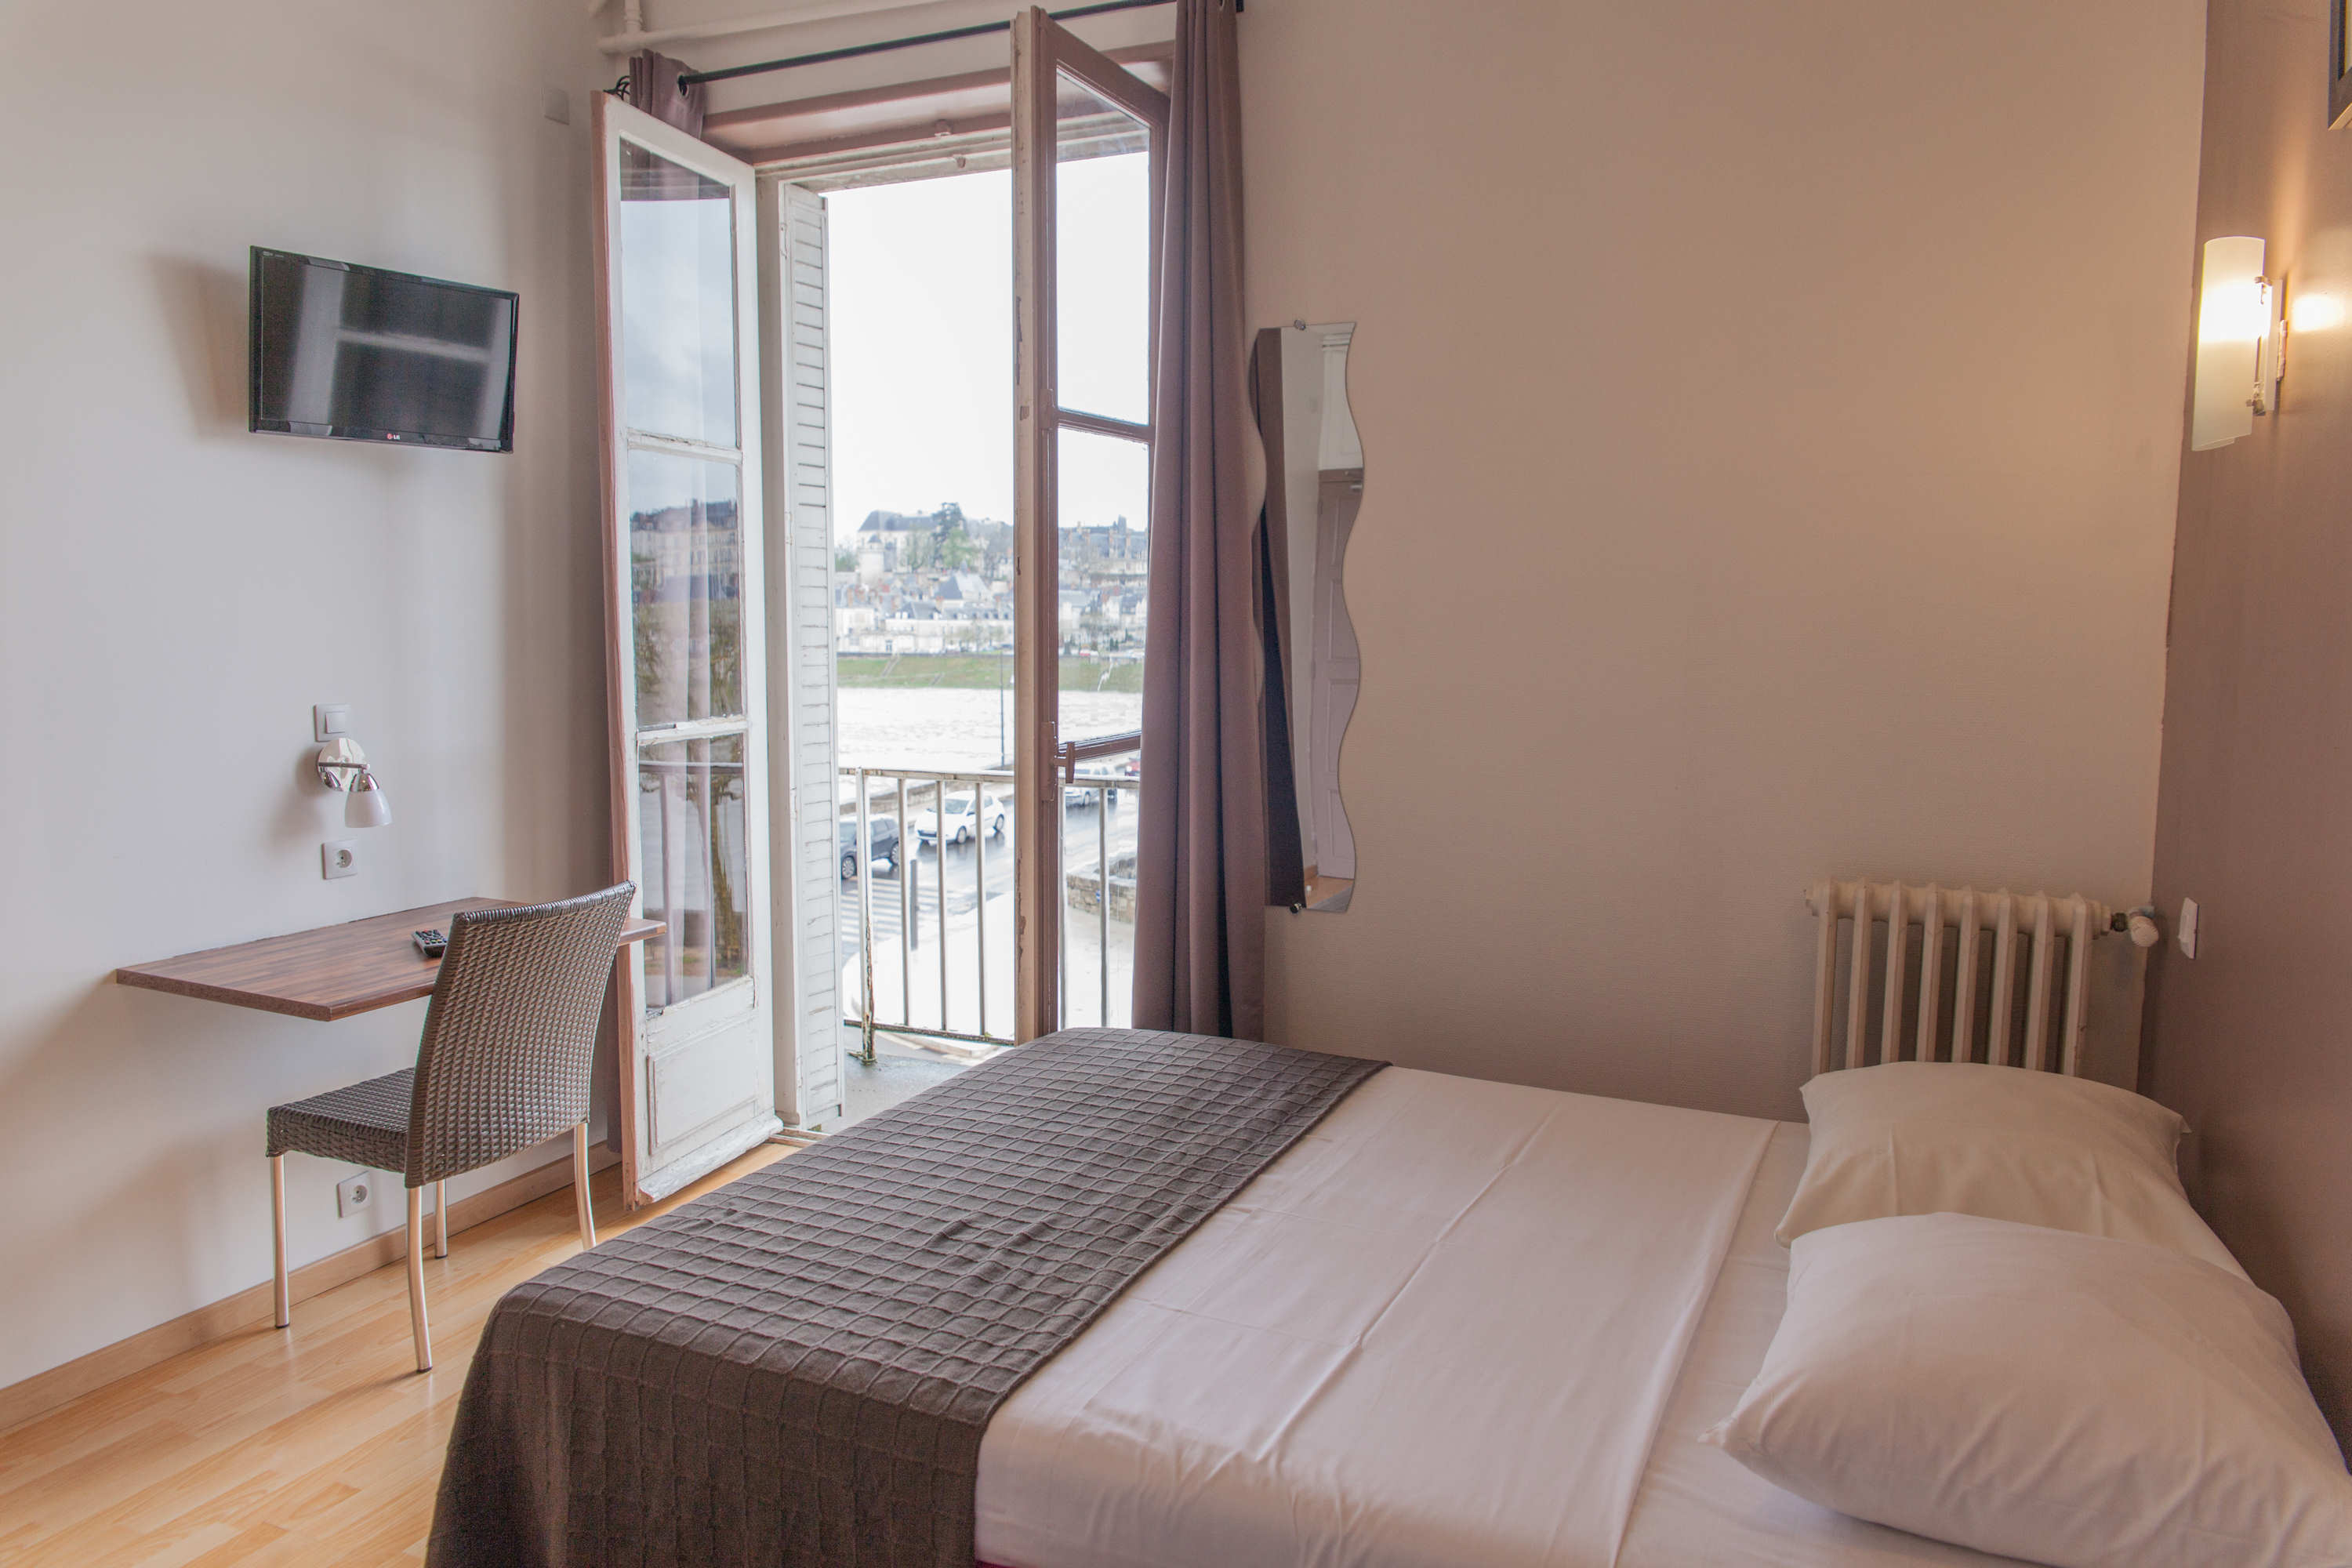 pavillon hotel in blois 2 star hotel in blois on the banks of the loire. Black Bedroom Furniture Sets. Home Design Ideas